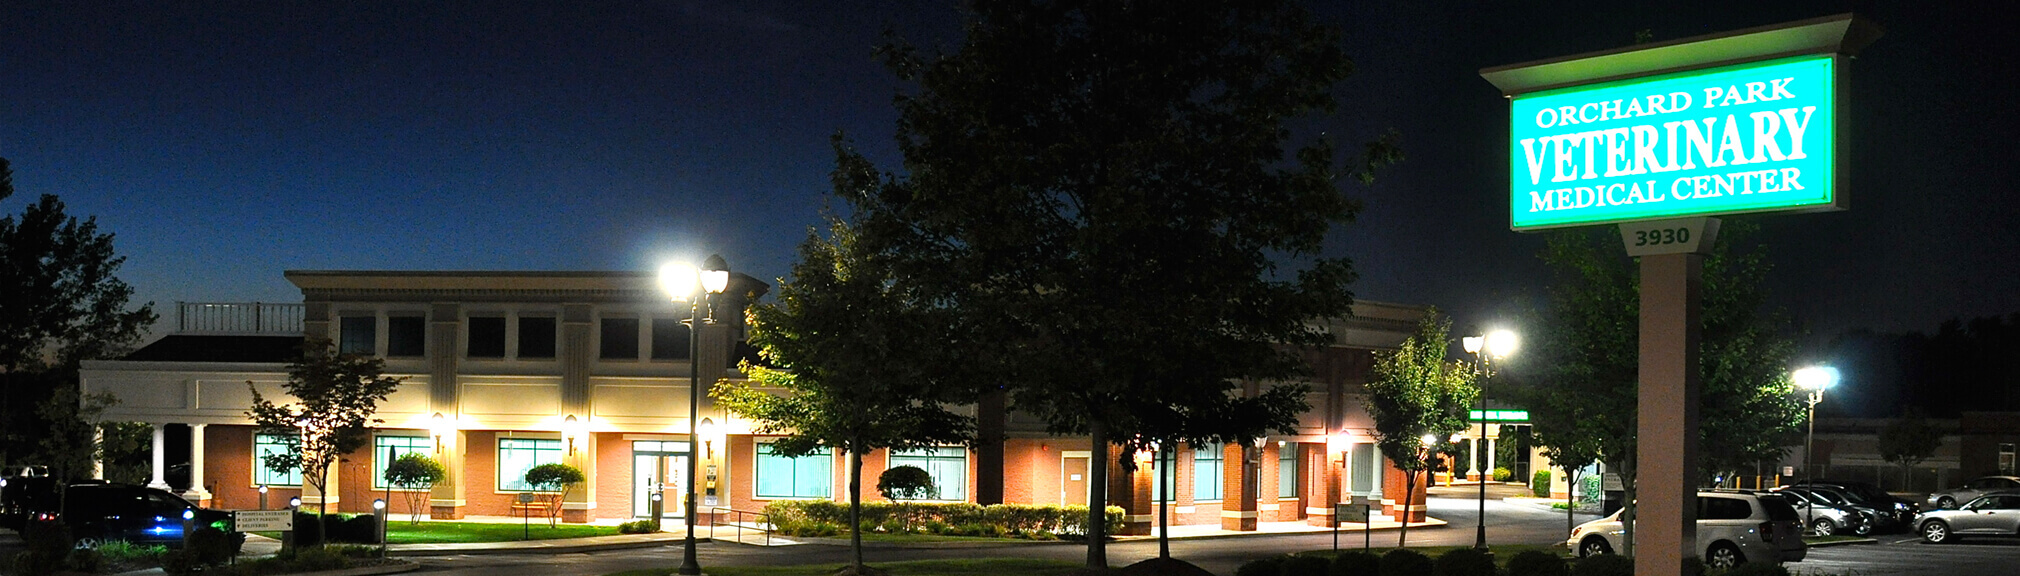 Orchard Park Veterinary Medical Center Nighttime